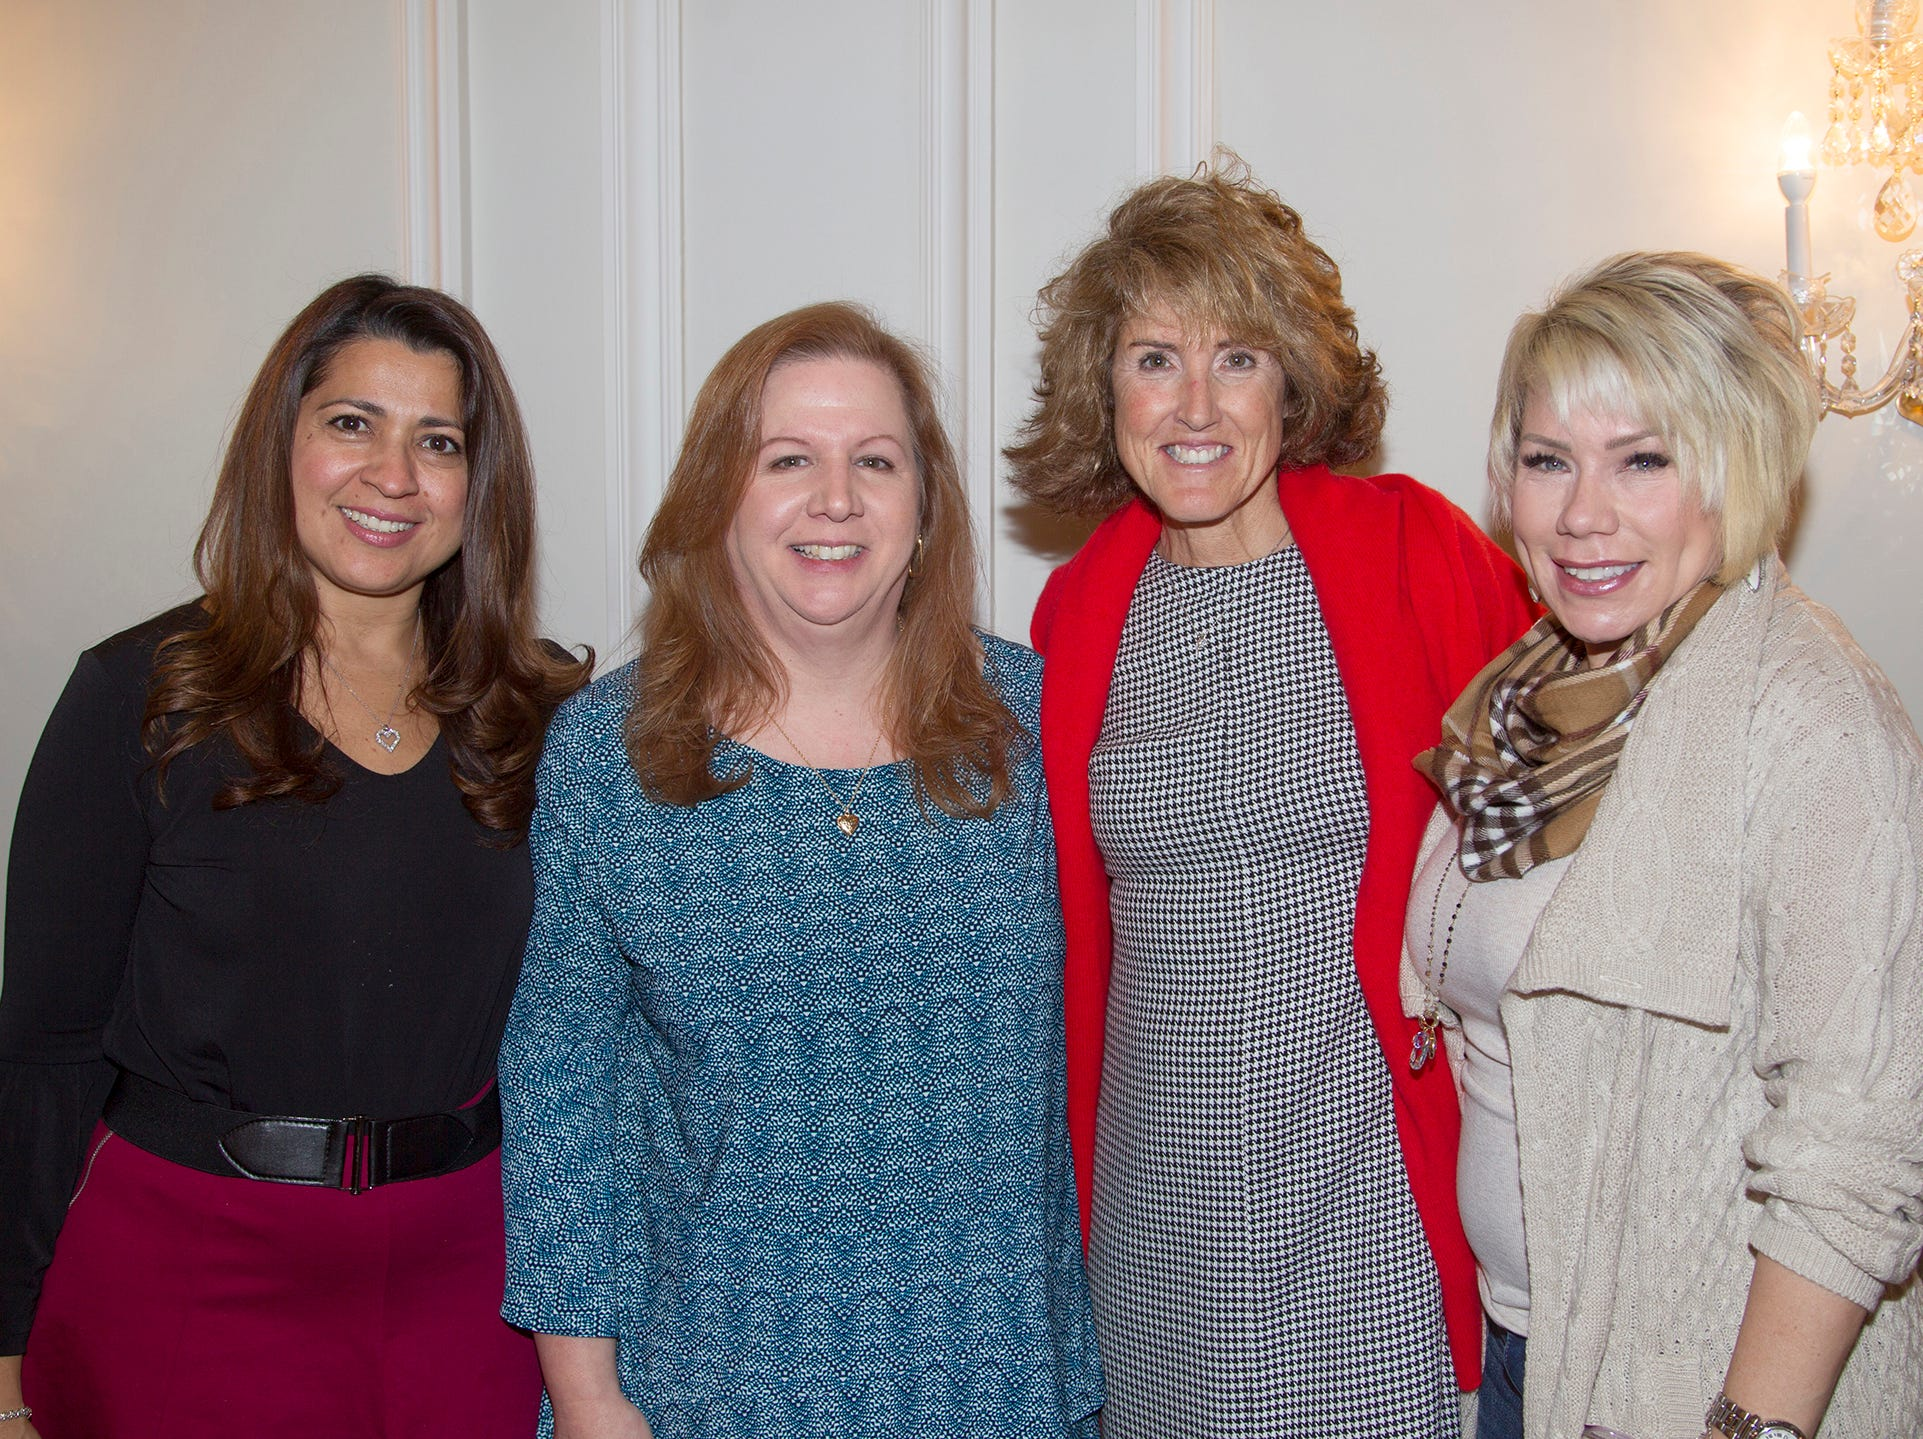 Katia Carrozza, Kipp Yapaola, MaryAnn Maurer, Gloria Amorosa. Immaculate Heart Academy held its annual Fashion Show fundraiser at Florentine Gardens in River Vale. 12/02/2018